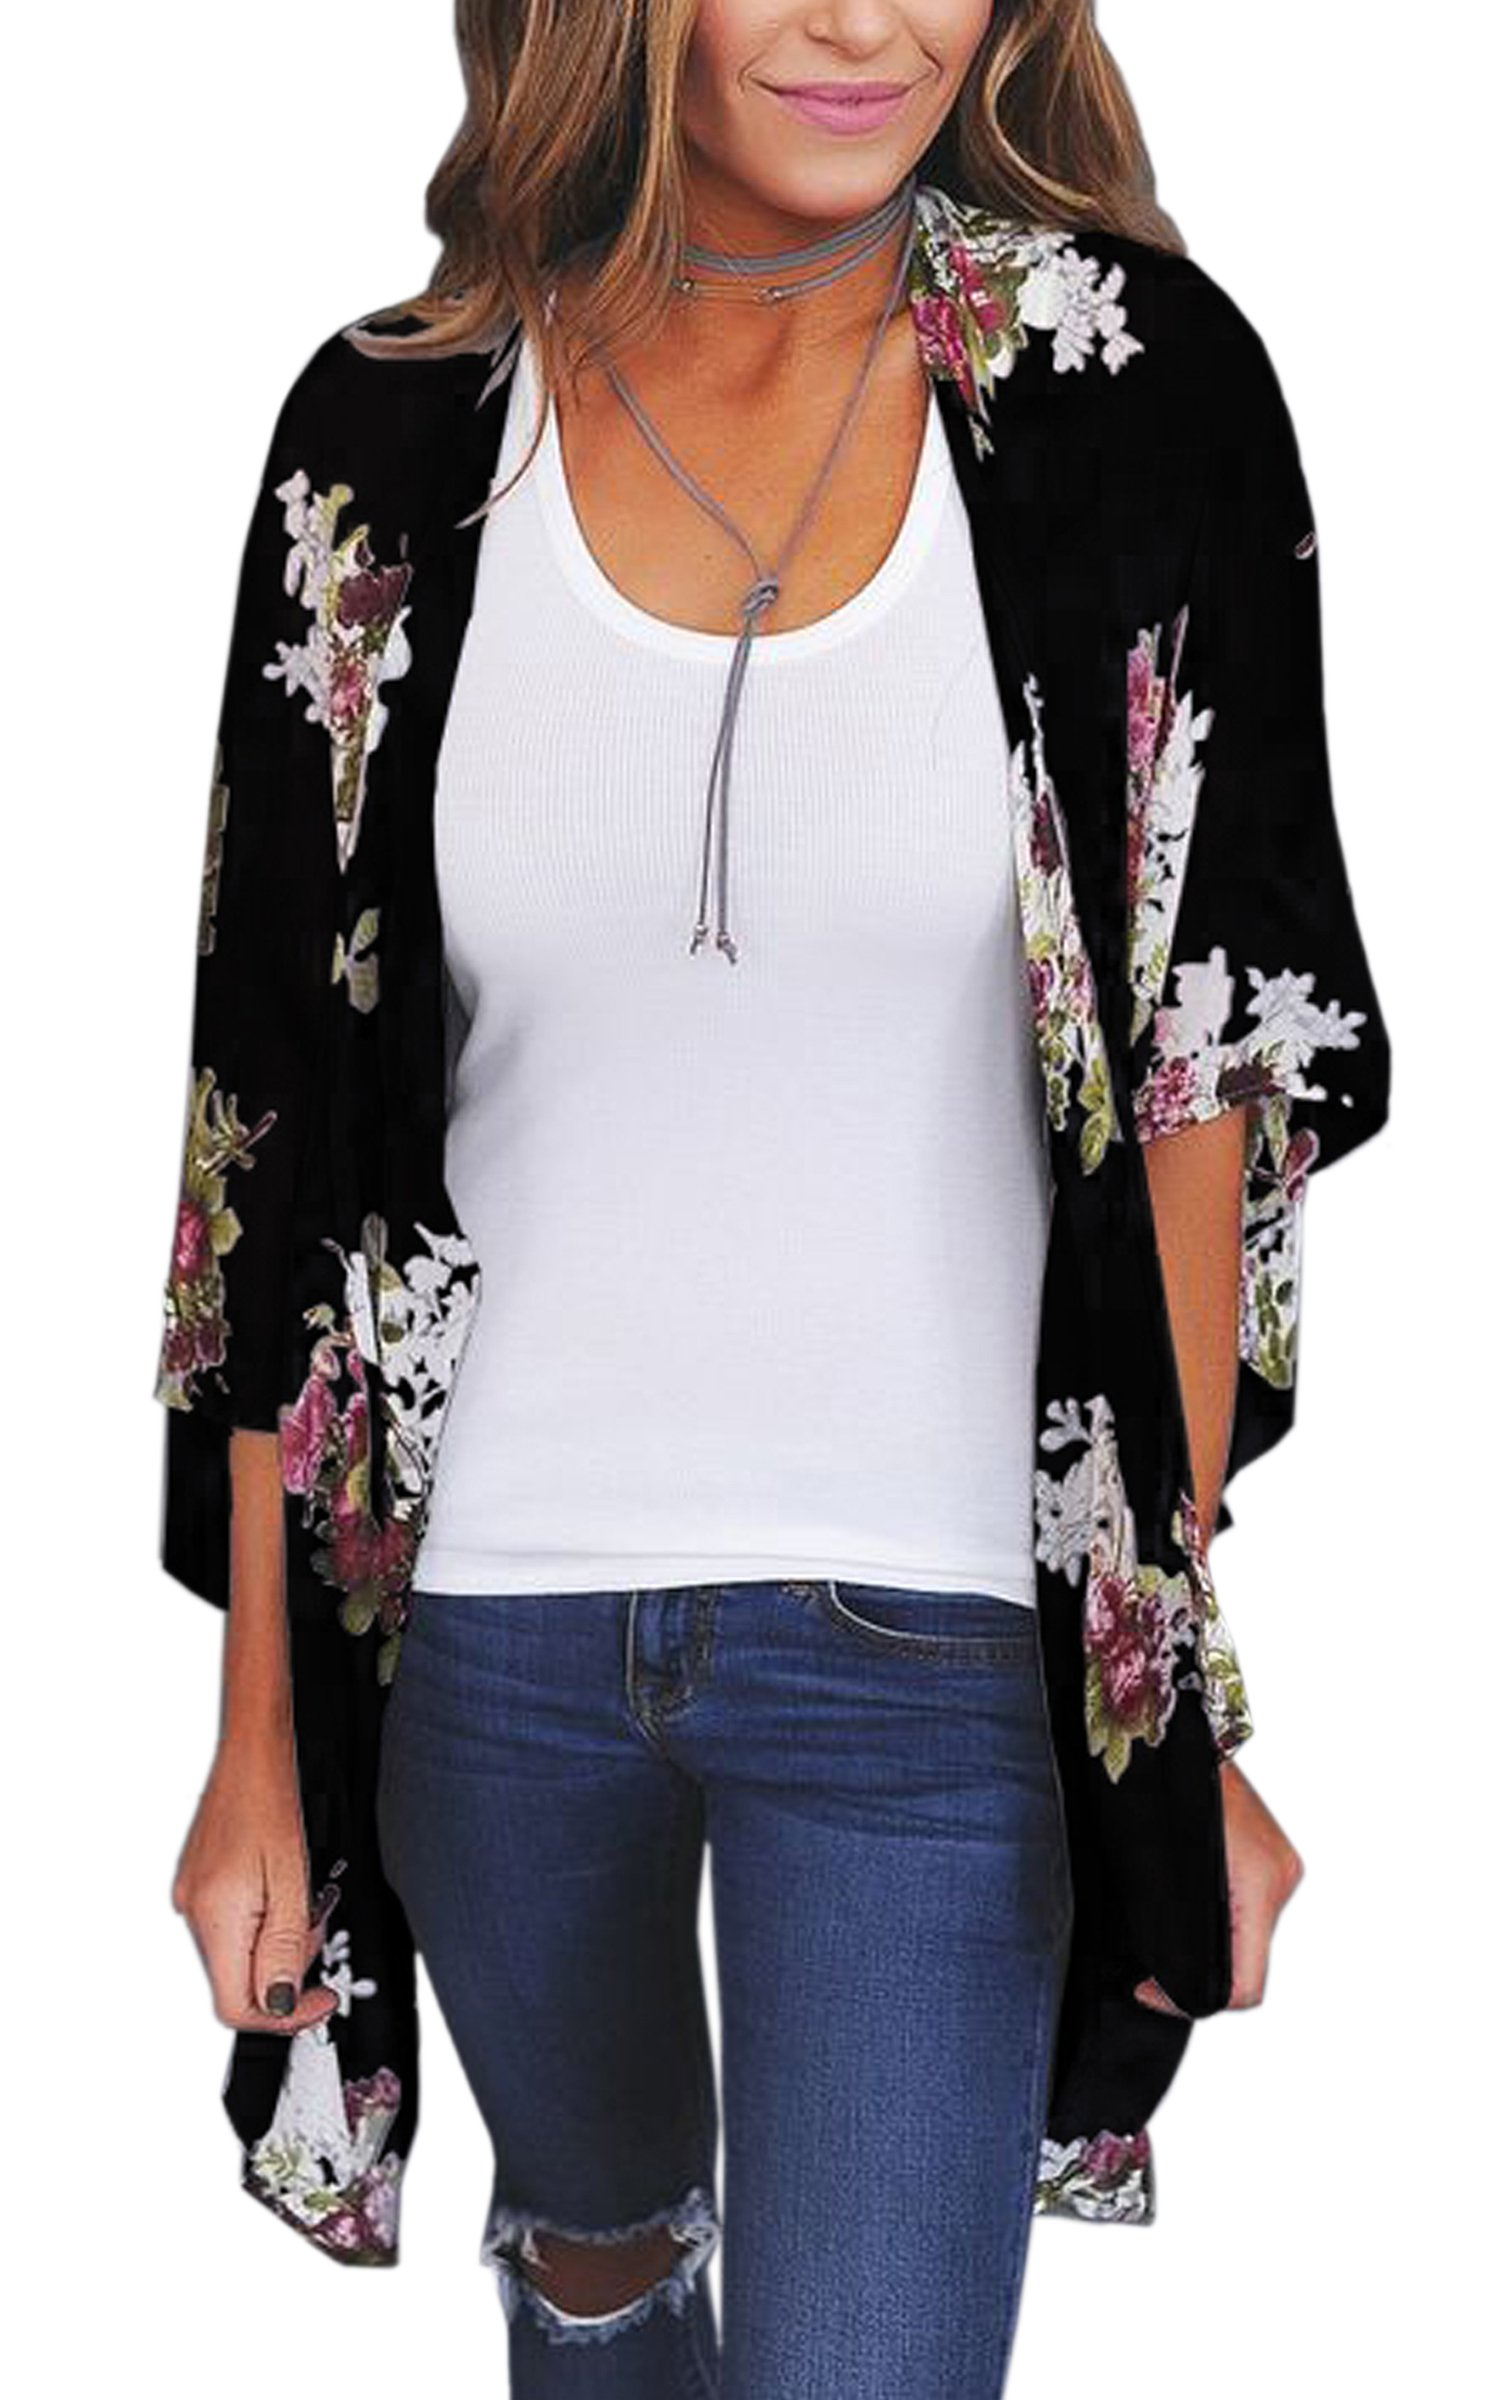 ECOWISH Womens Floral Print Loose Puff Sleeve Kimono Cardigan Lace Patchwork Cover Up Blouse D2003Black XL